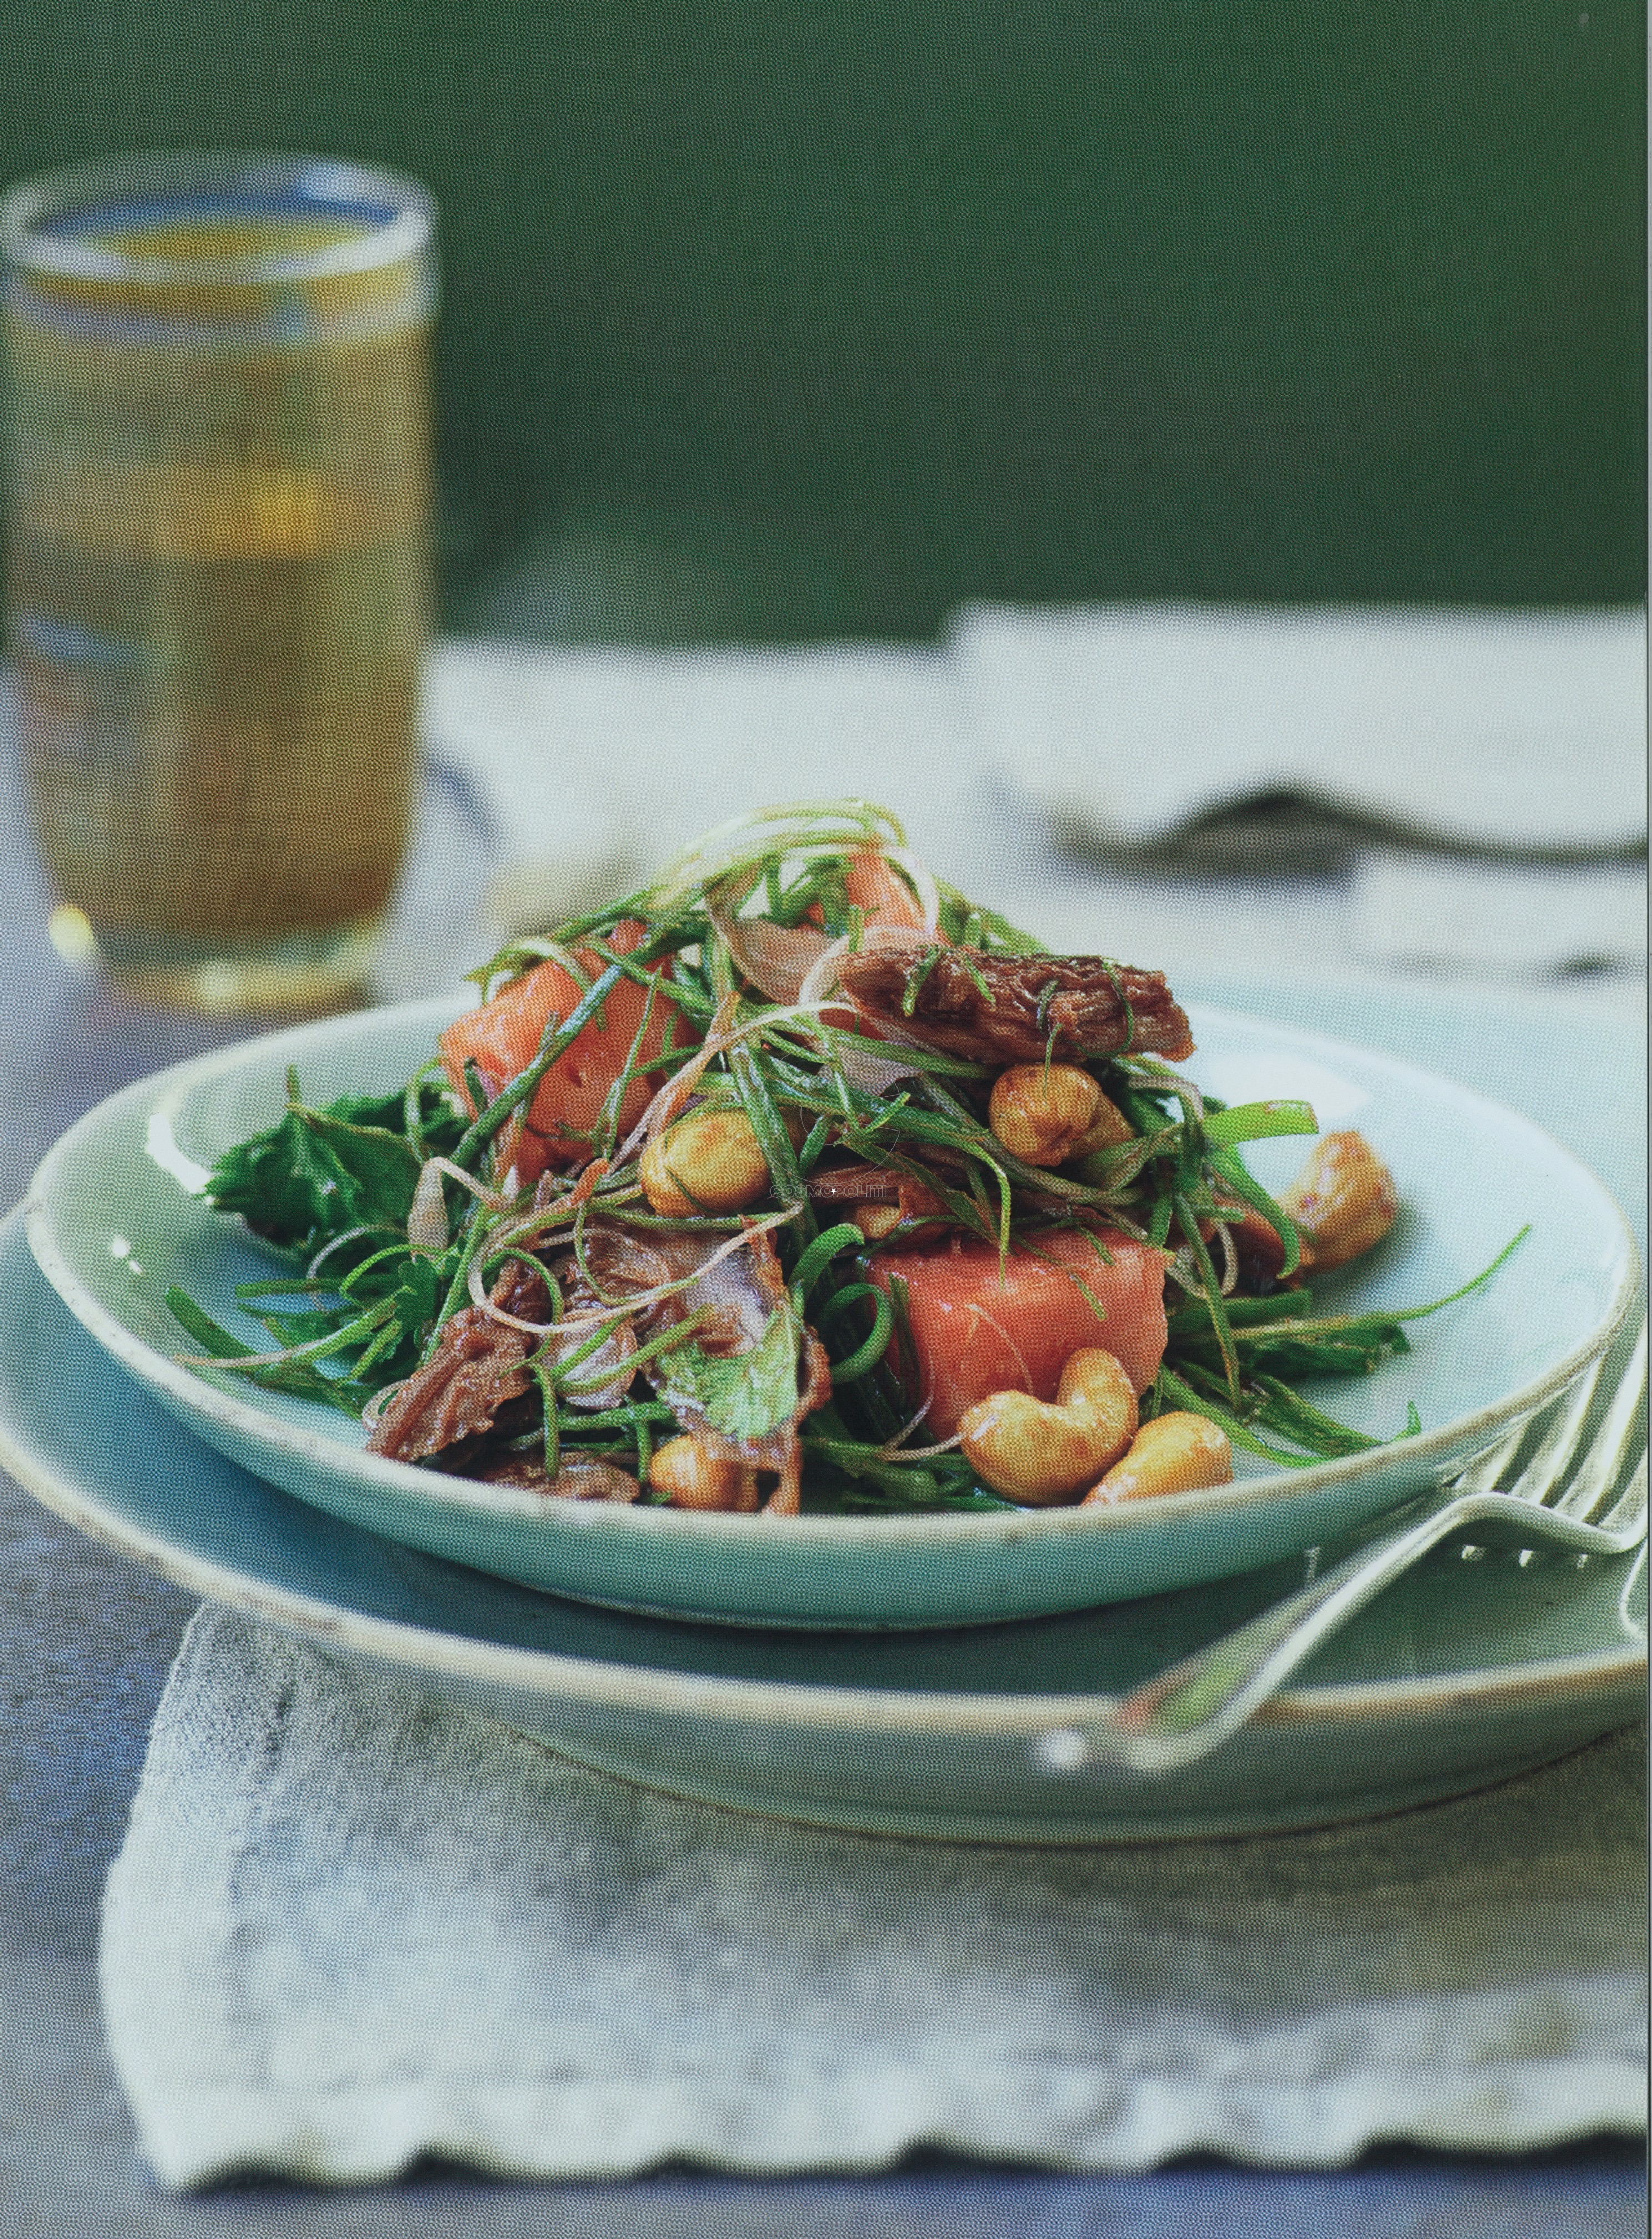 DUCK WATERMELON AND CASHEW SALAD